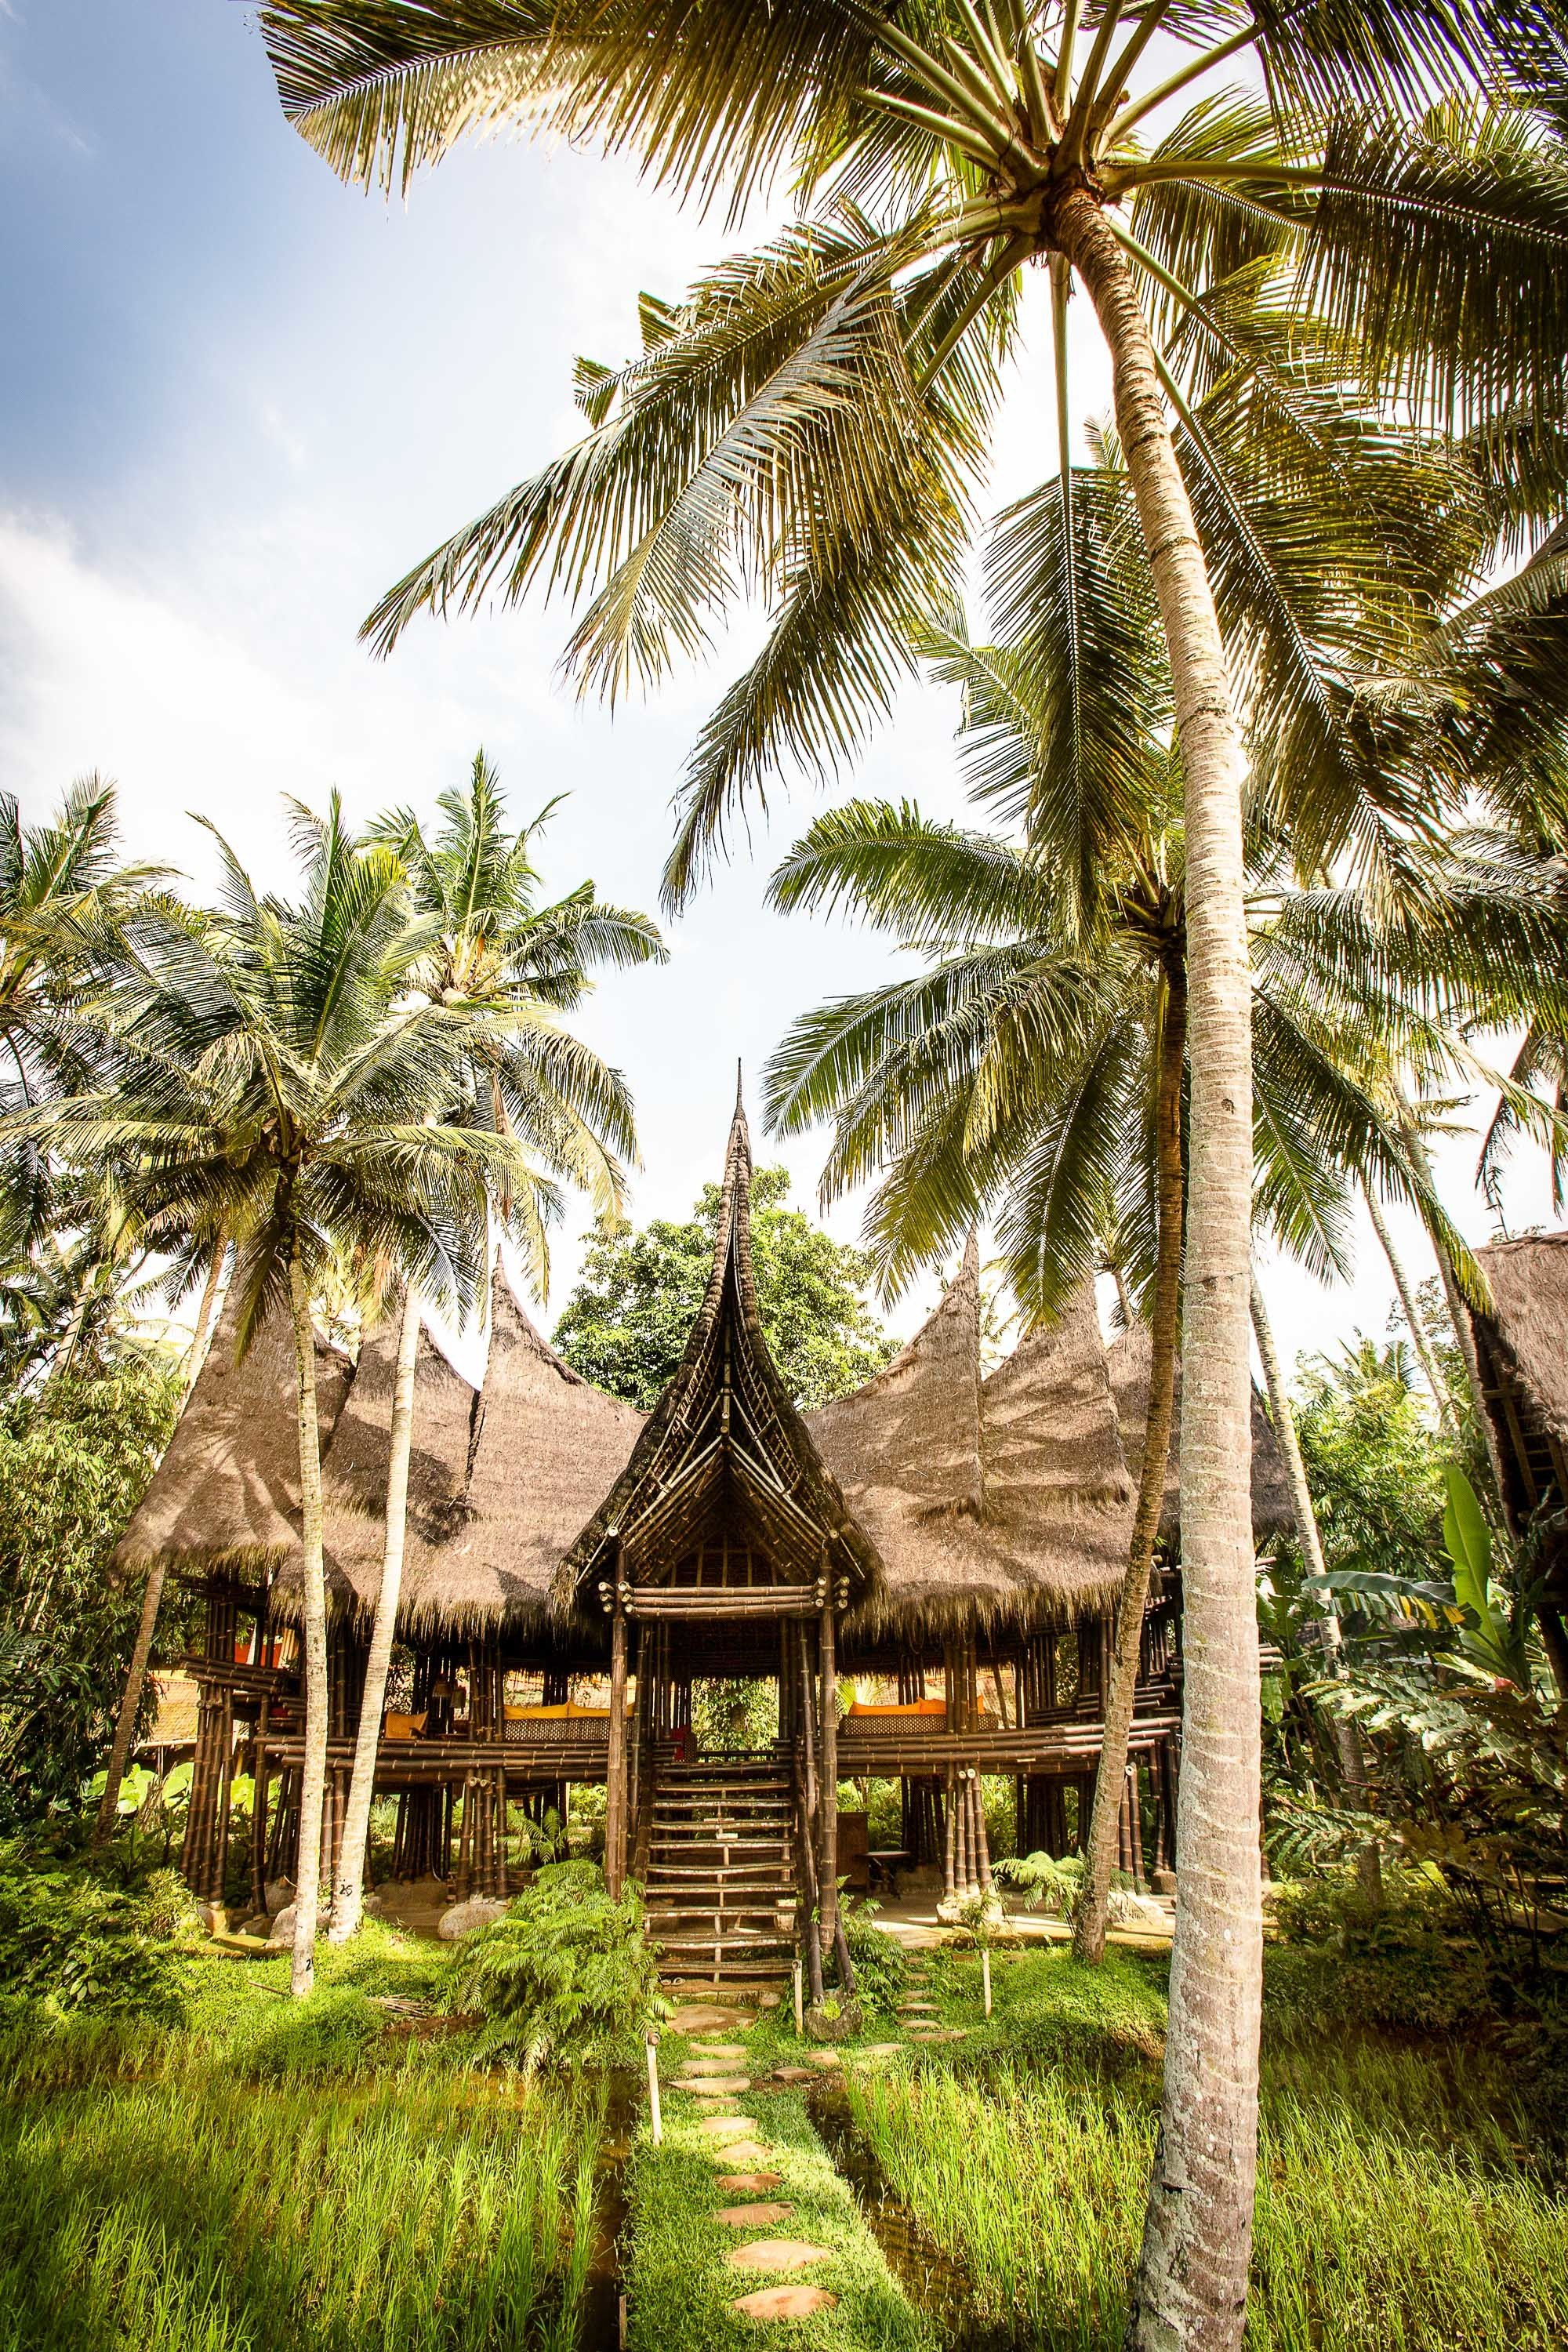 Boutique Hotels Hotels tree outdoor grass plant palm vegetation arecales palm tree Resort tropics sky cottage hut real estate plantation estate home landscape house area lush